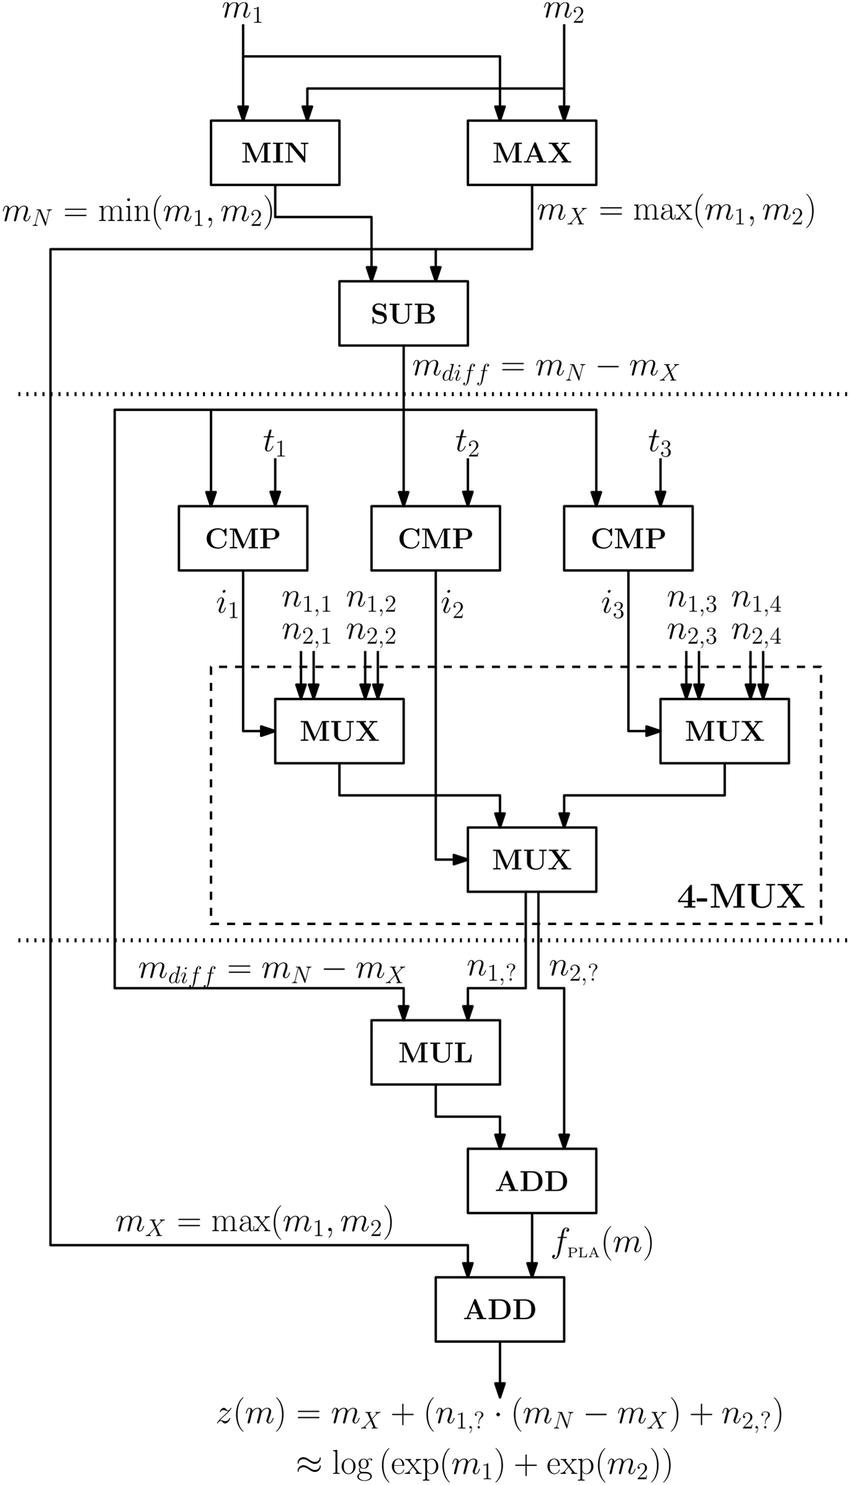 hight resolution of circuit diagram for the logsum operation with n 2 inputs and k 4 look